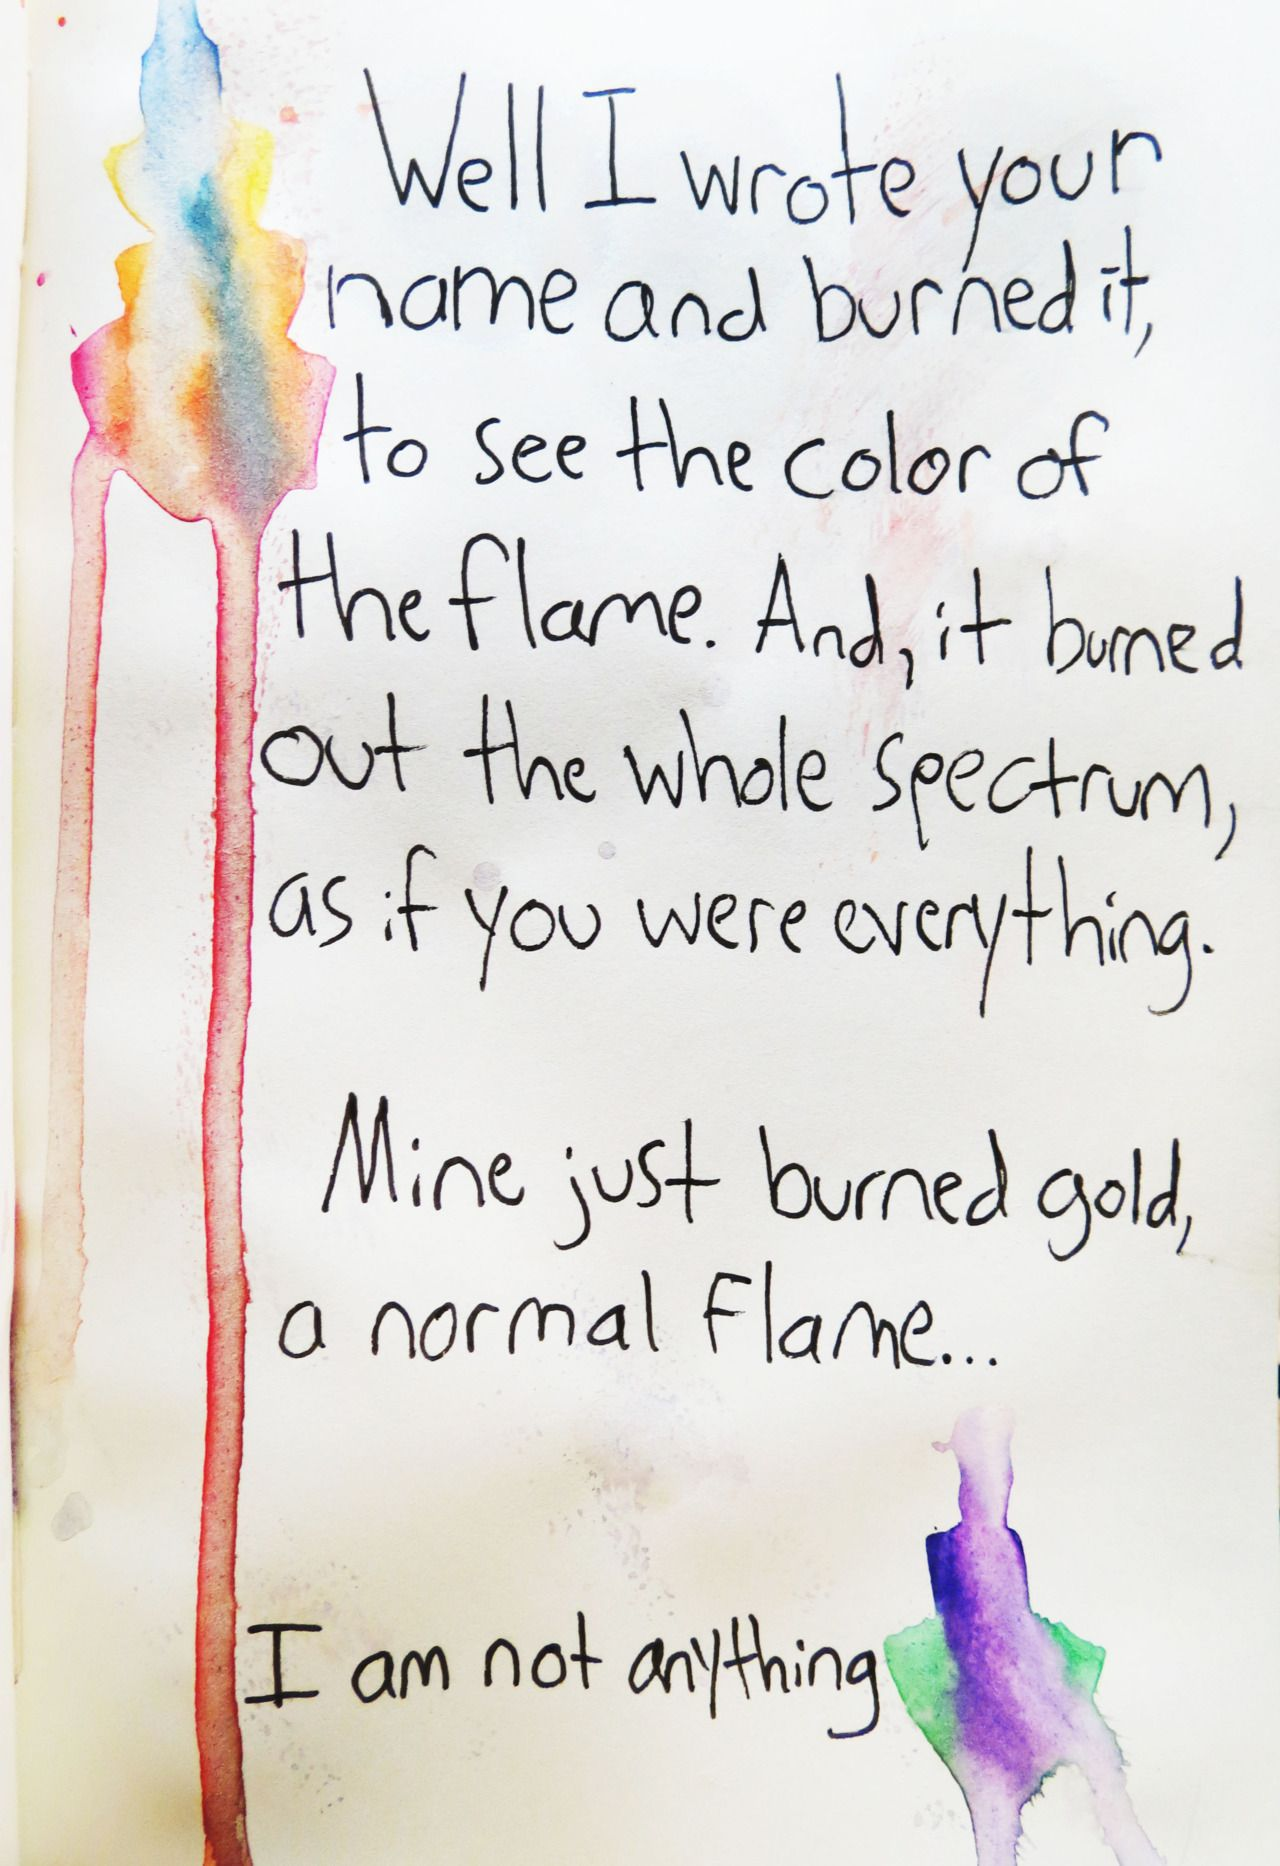 brand new lyrics well i wrote your and burned it to see the brand new lyrics well i wrote your and burned it to see the color of the flame and it burned out the whole spectrum as if you were everything